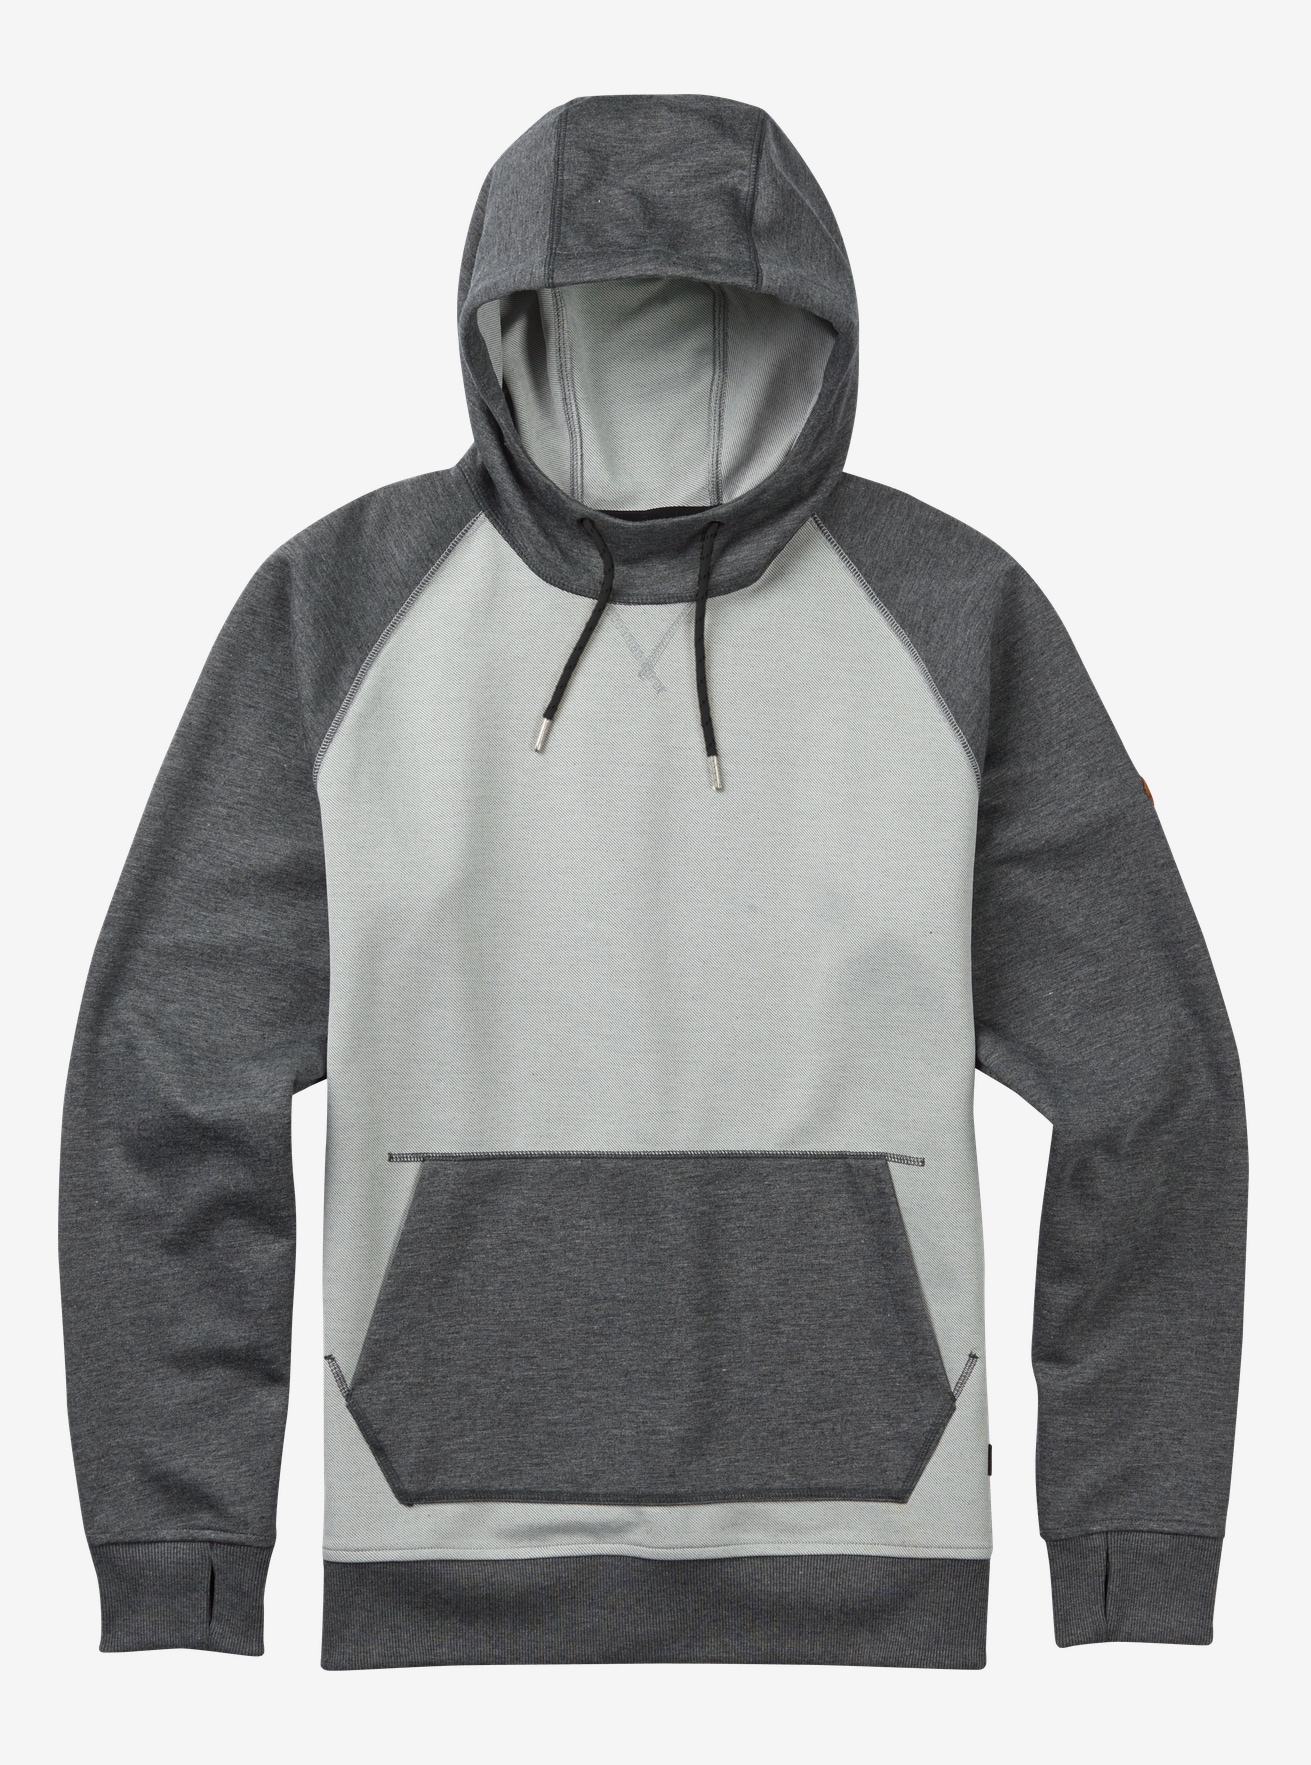 Burton Crown Bonded Pullover Hoodie shown in High Rise Twill